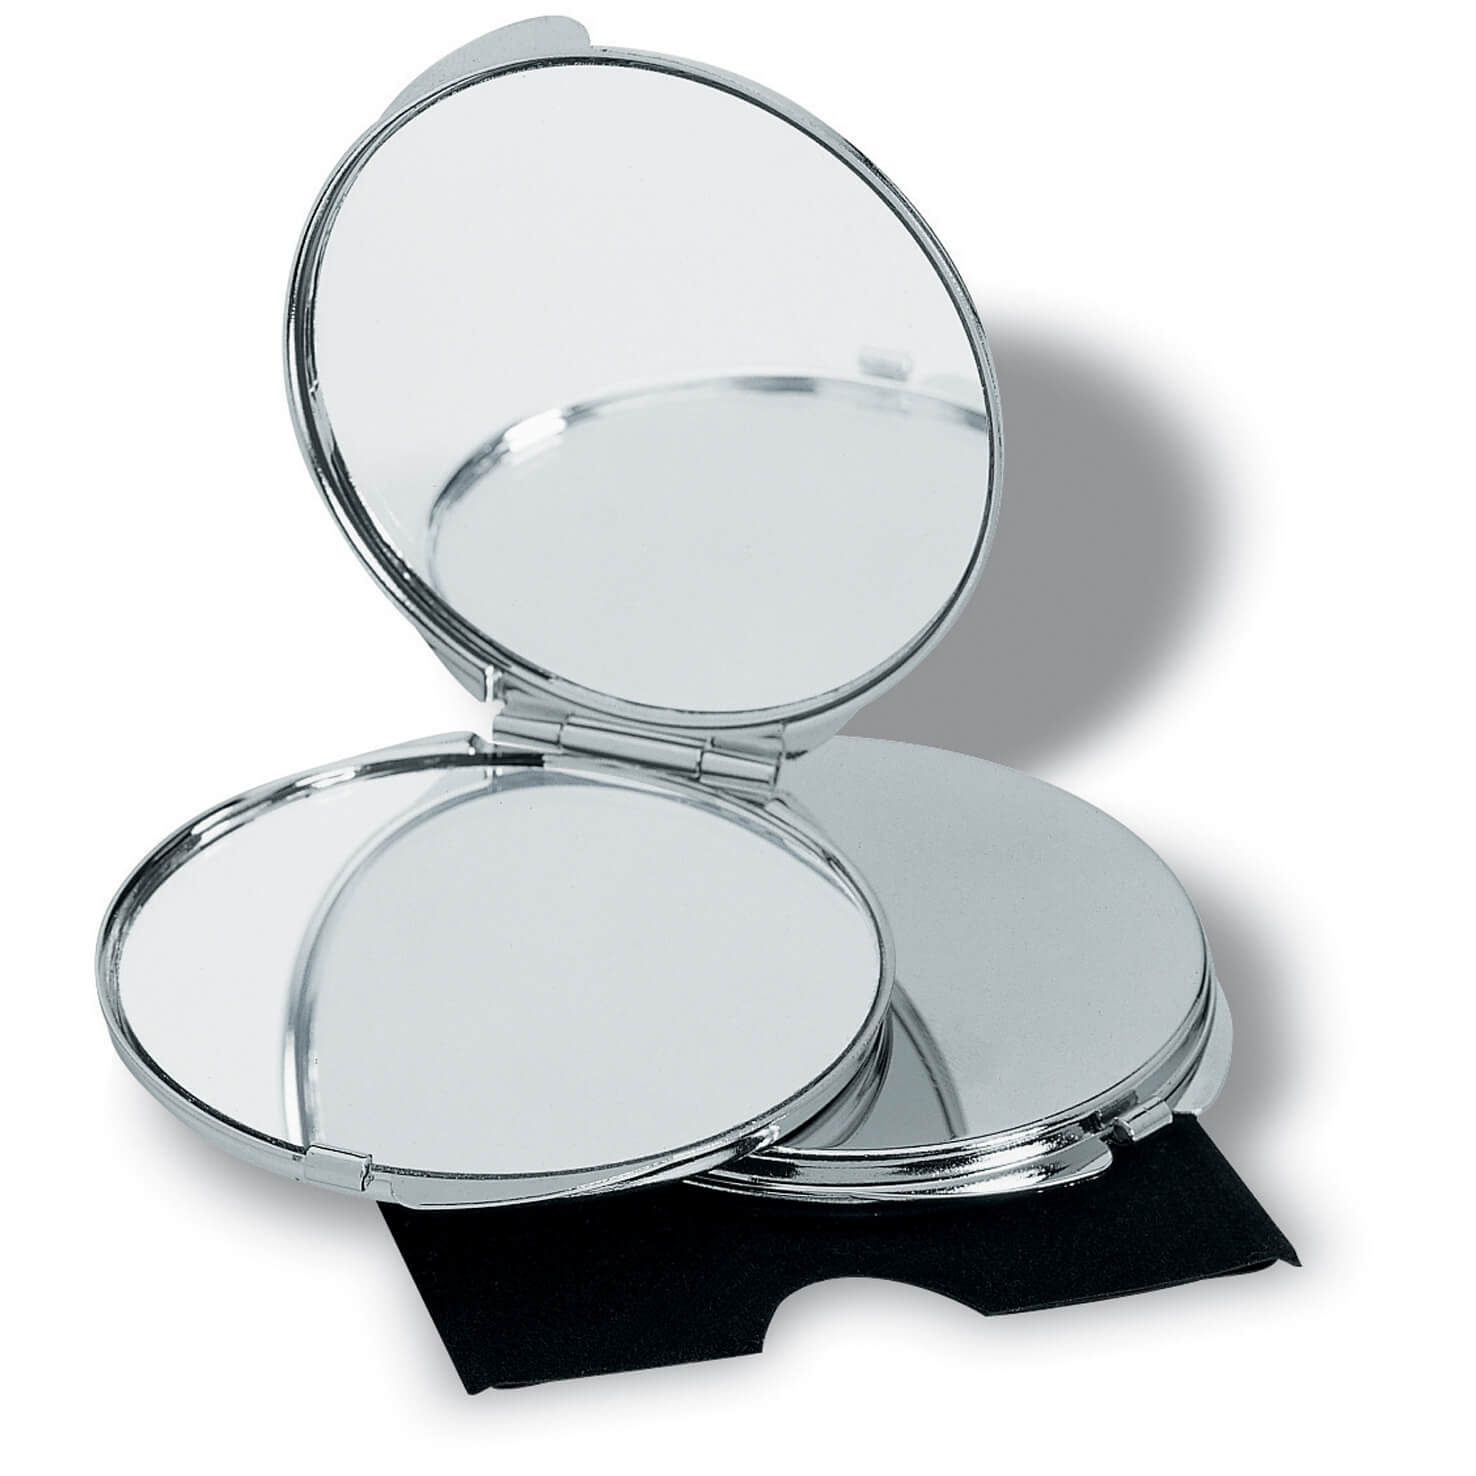 Miroir De Poche Personnalisé Pas Cher ᐅ Miroir De Maquillage Étui En Velours Rapide And Pas